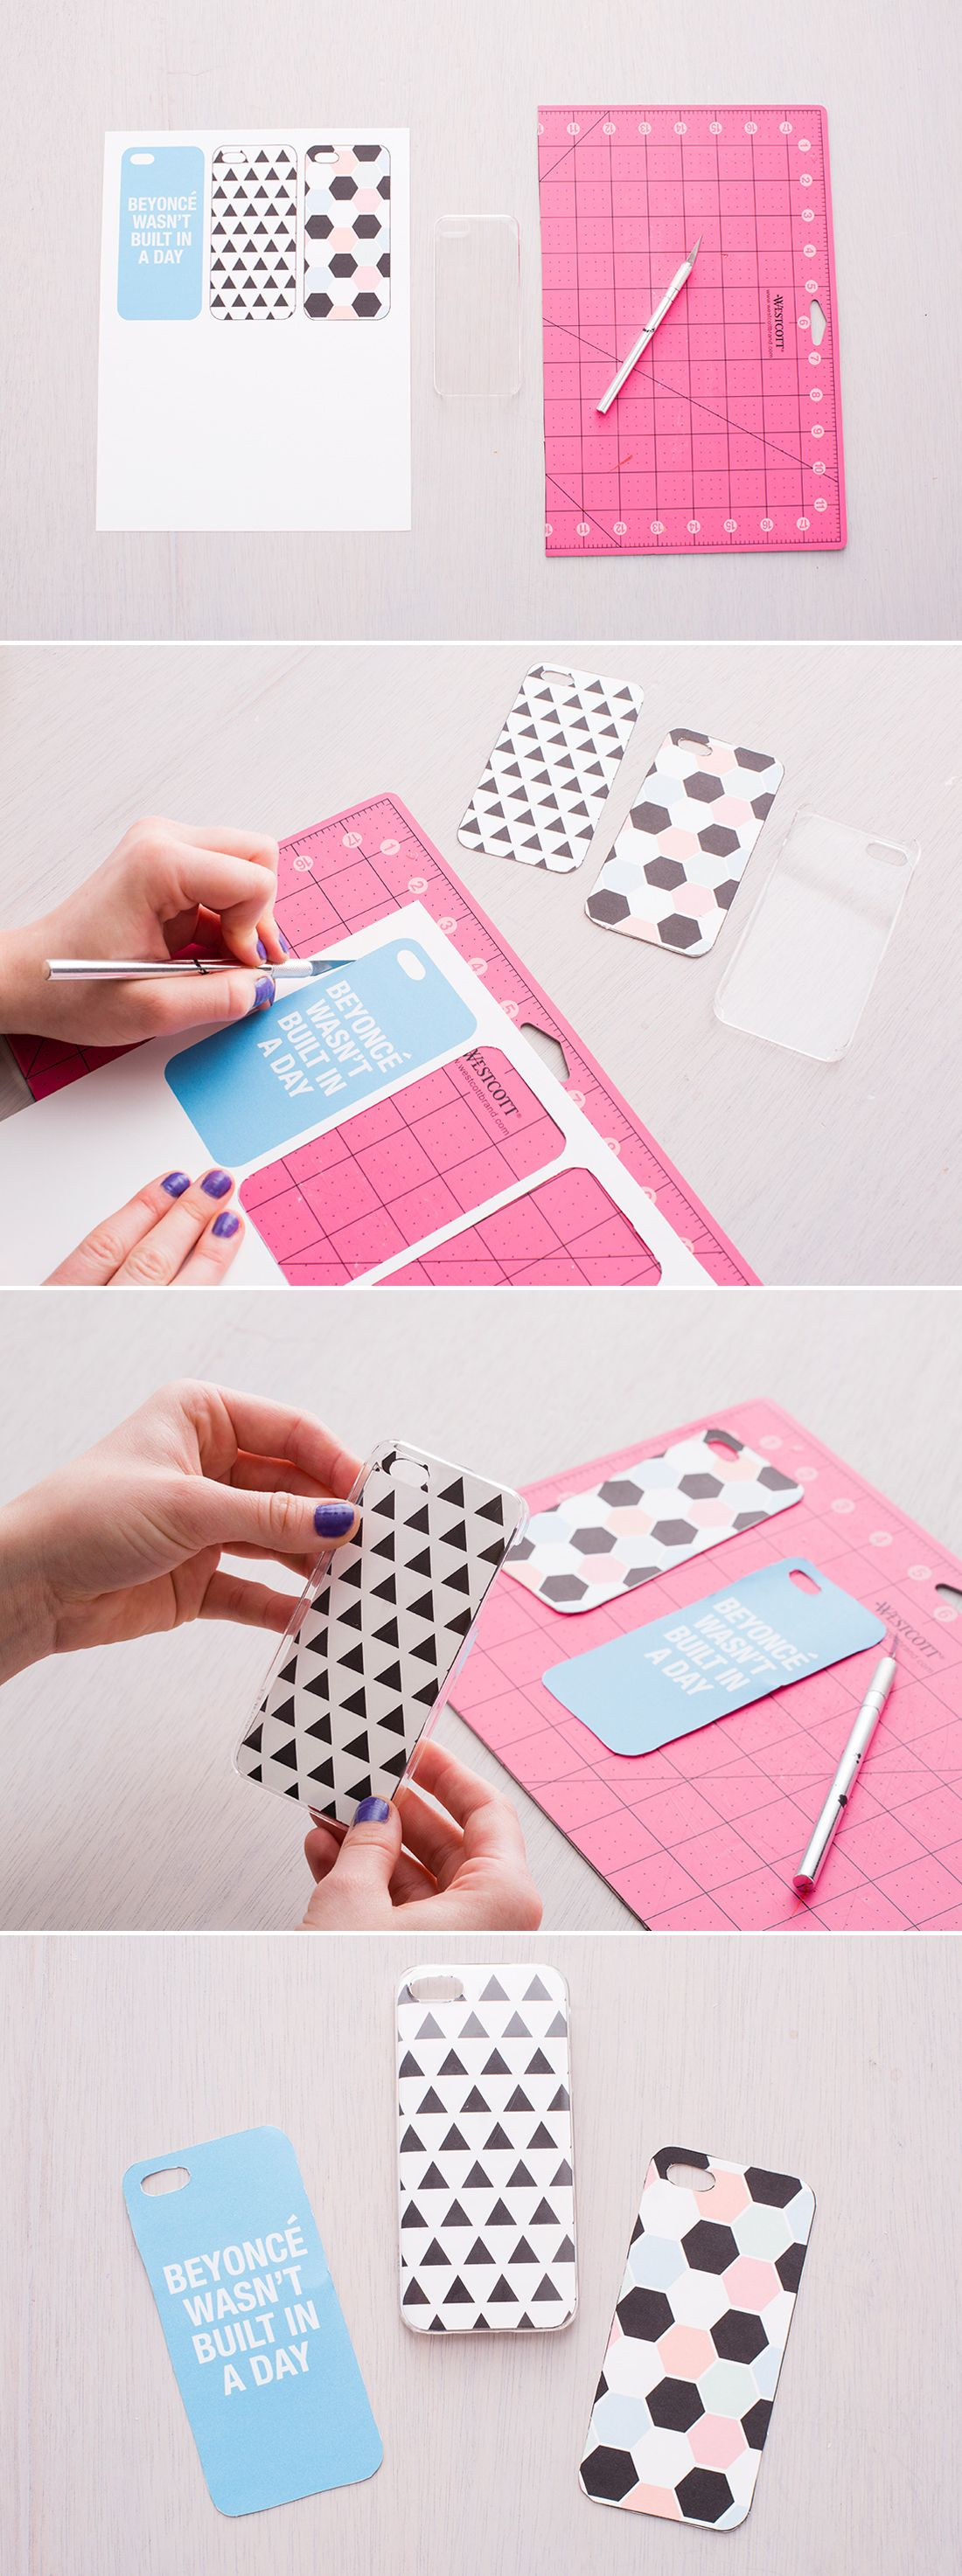 Diy Handyhülle Diy A New Iphone Case With These Free Printables Crafts